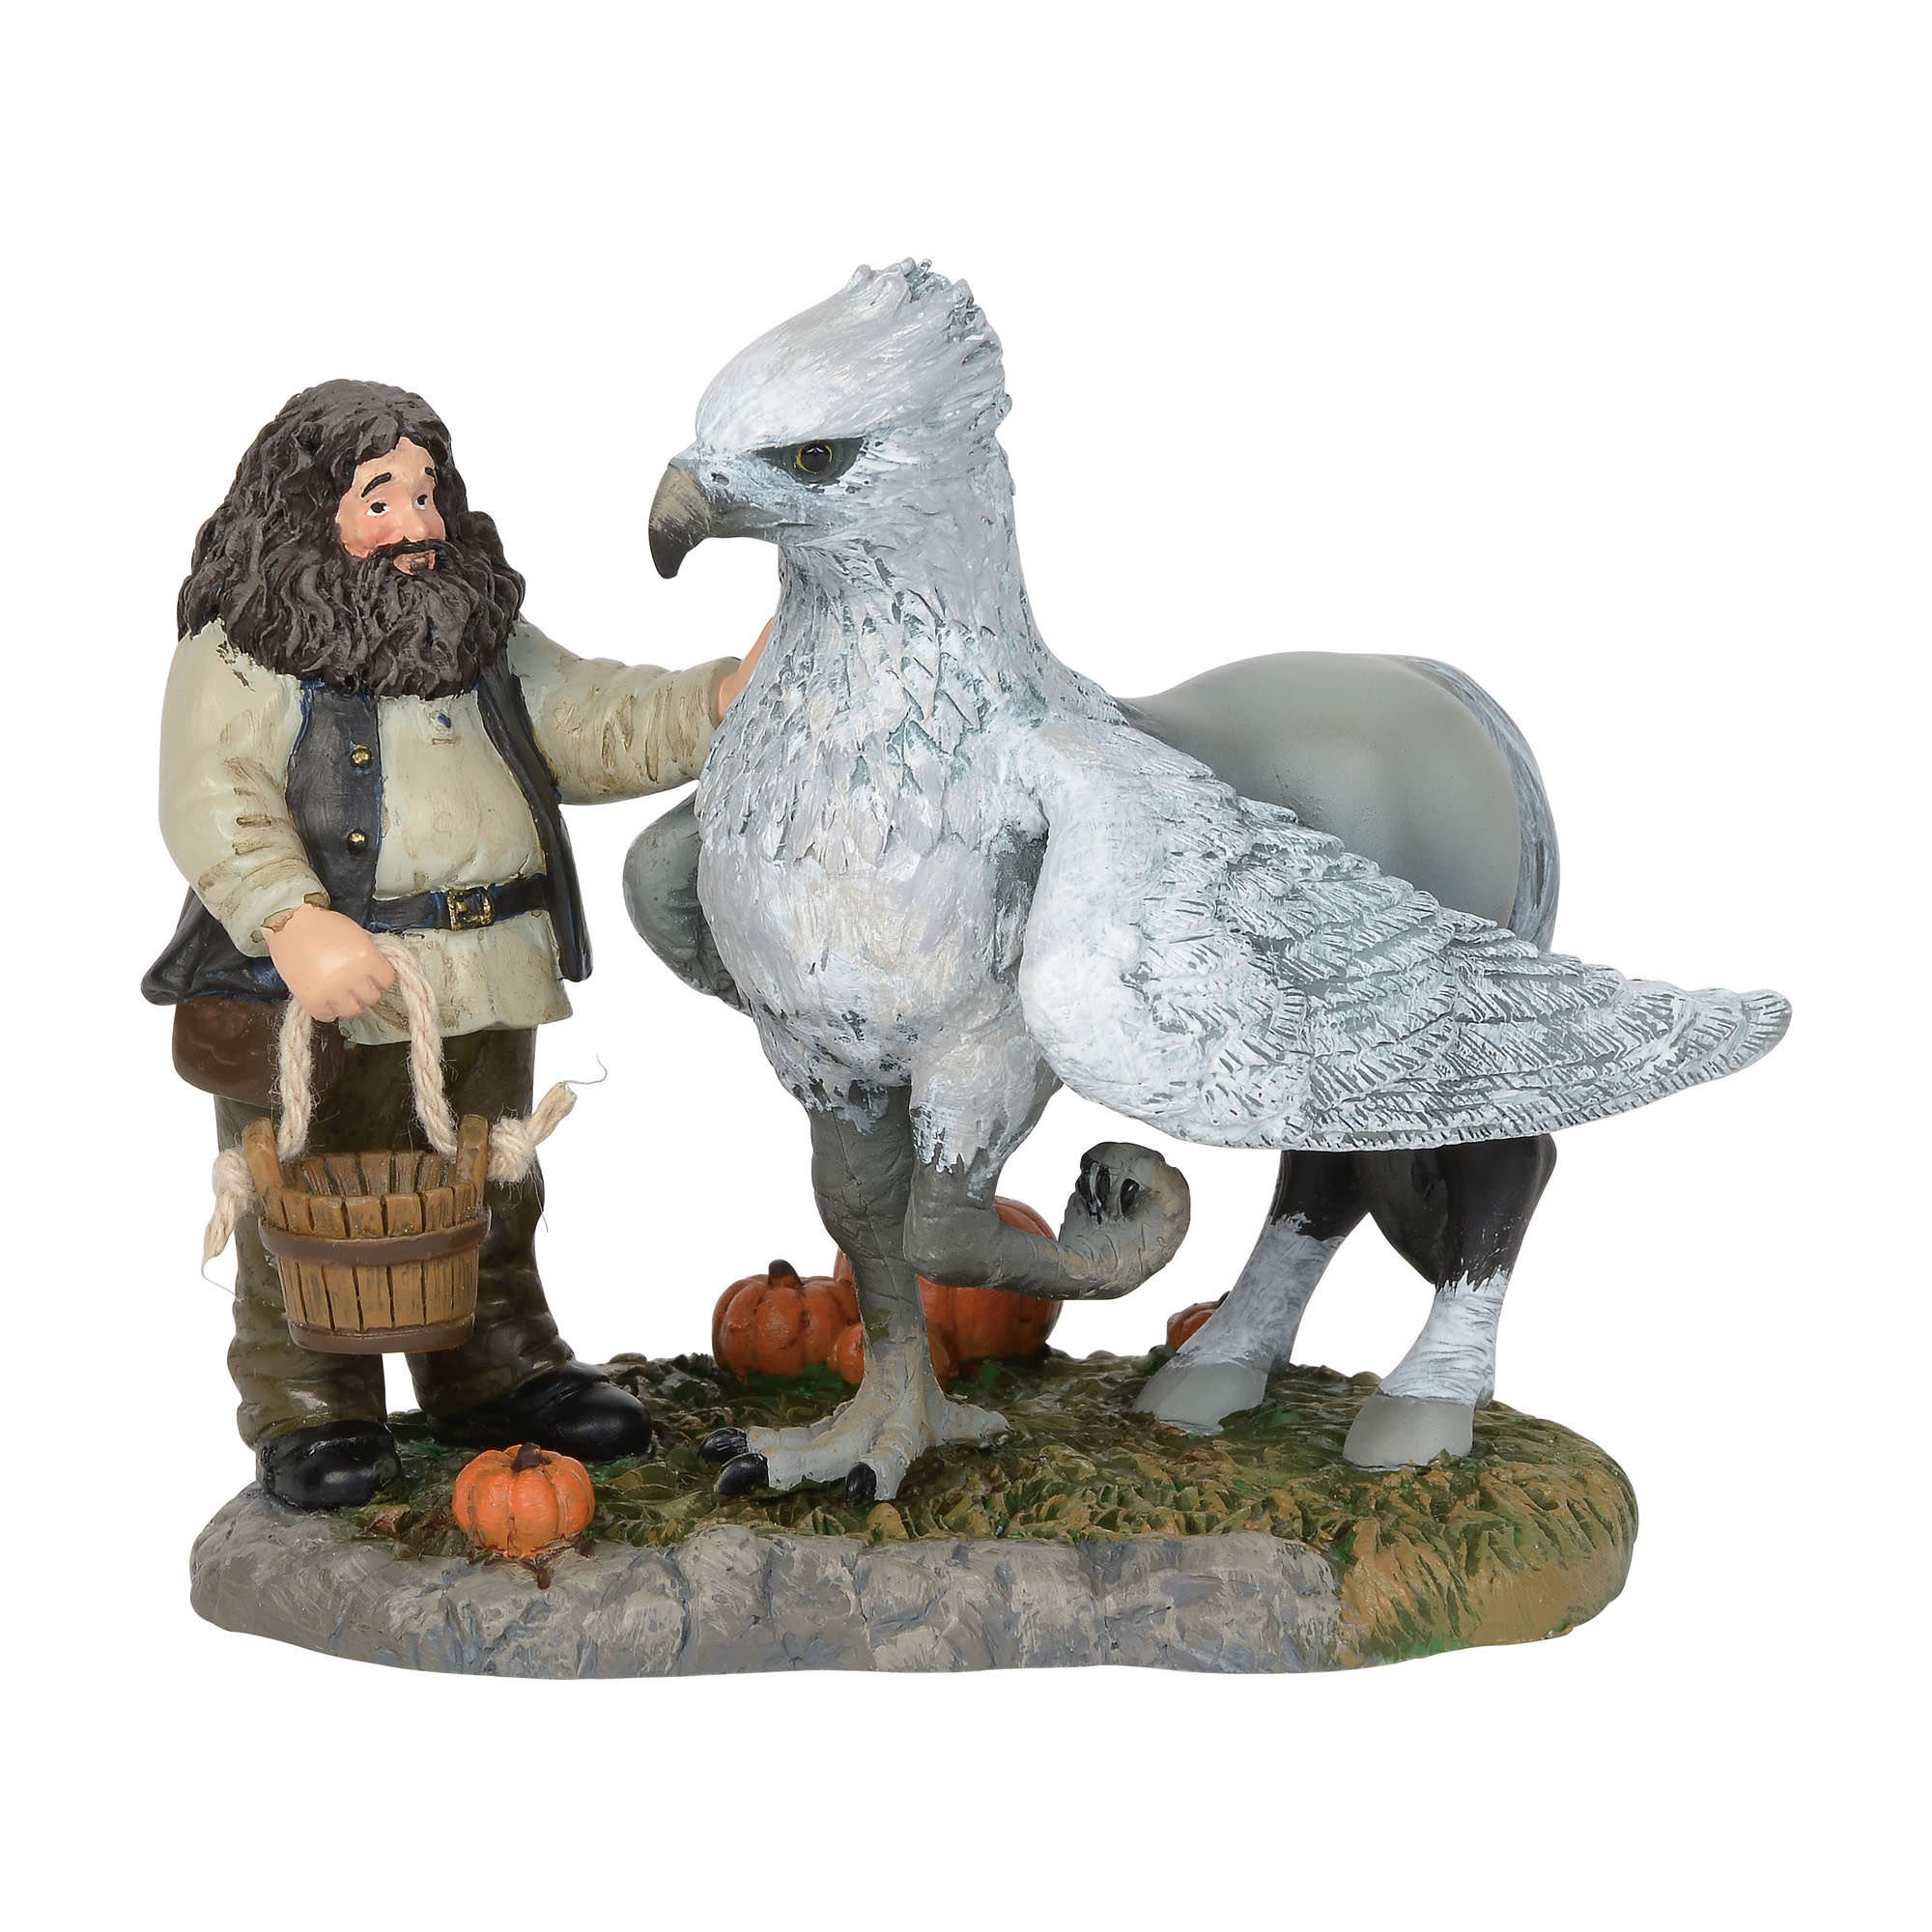 Department 56 Department 56 Harry Potter Village A Proud Hippogriff Indeed